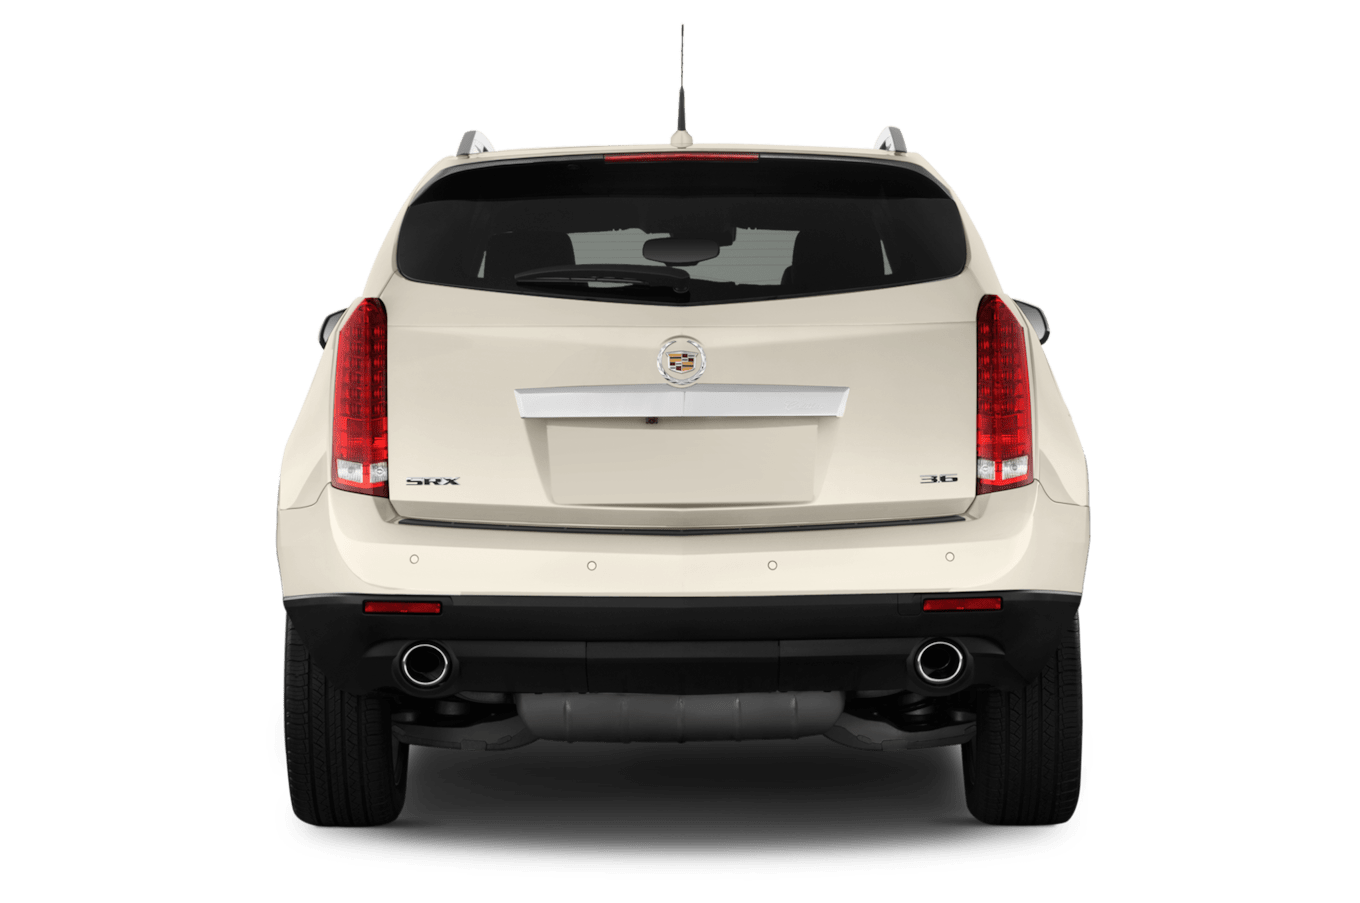 hight resolution of wiring diagram lights cadi srx 2013 autos post ver wiring diagram2013 cadillac srx wiring diagram lights